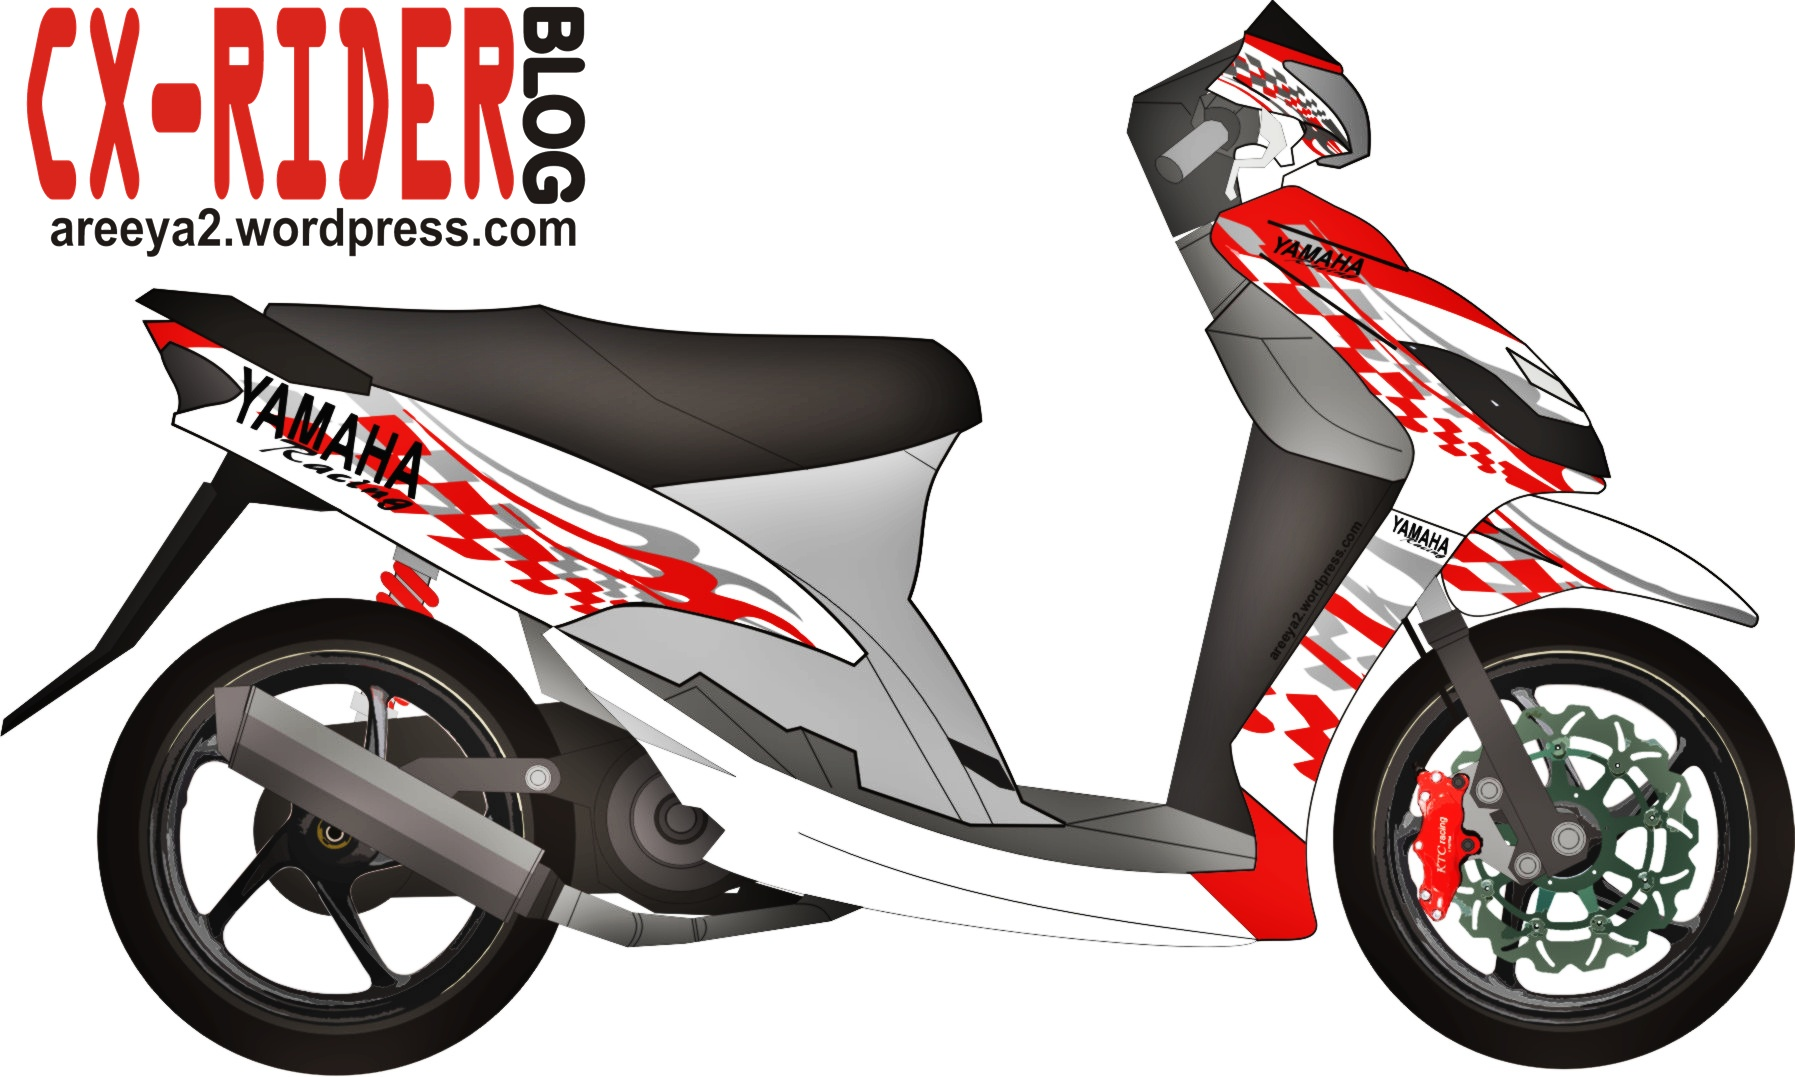 76 modifikasi motor mio cutting stiker terlengkap